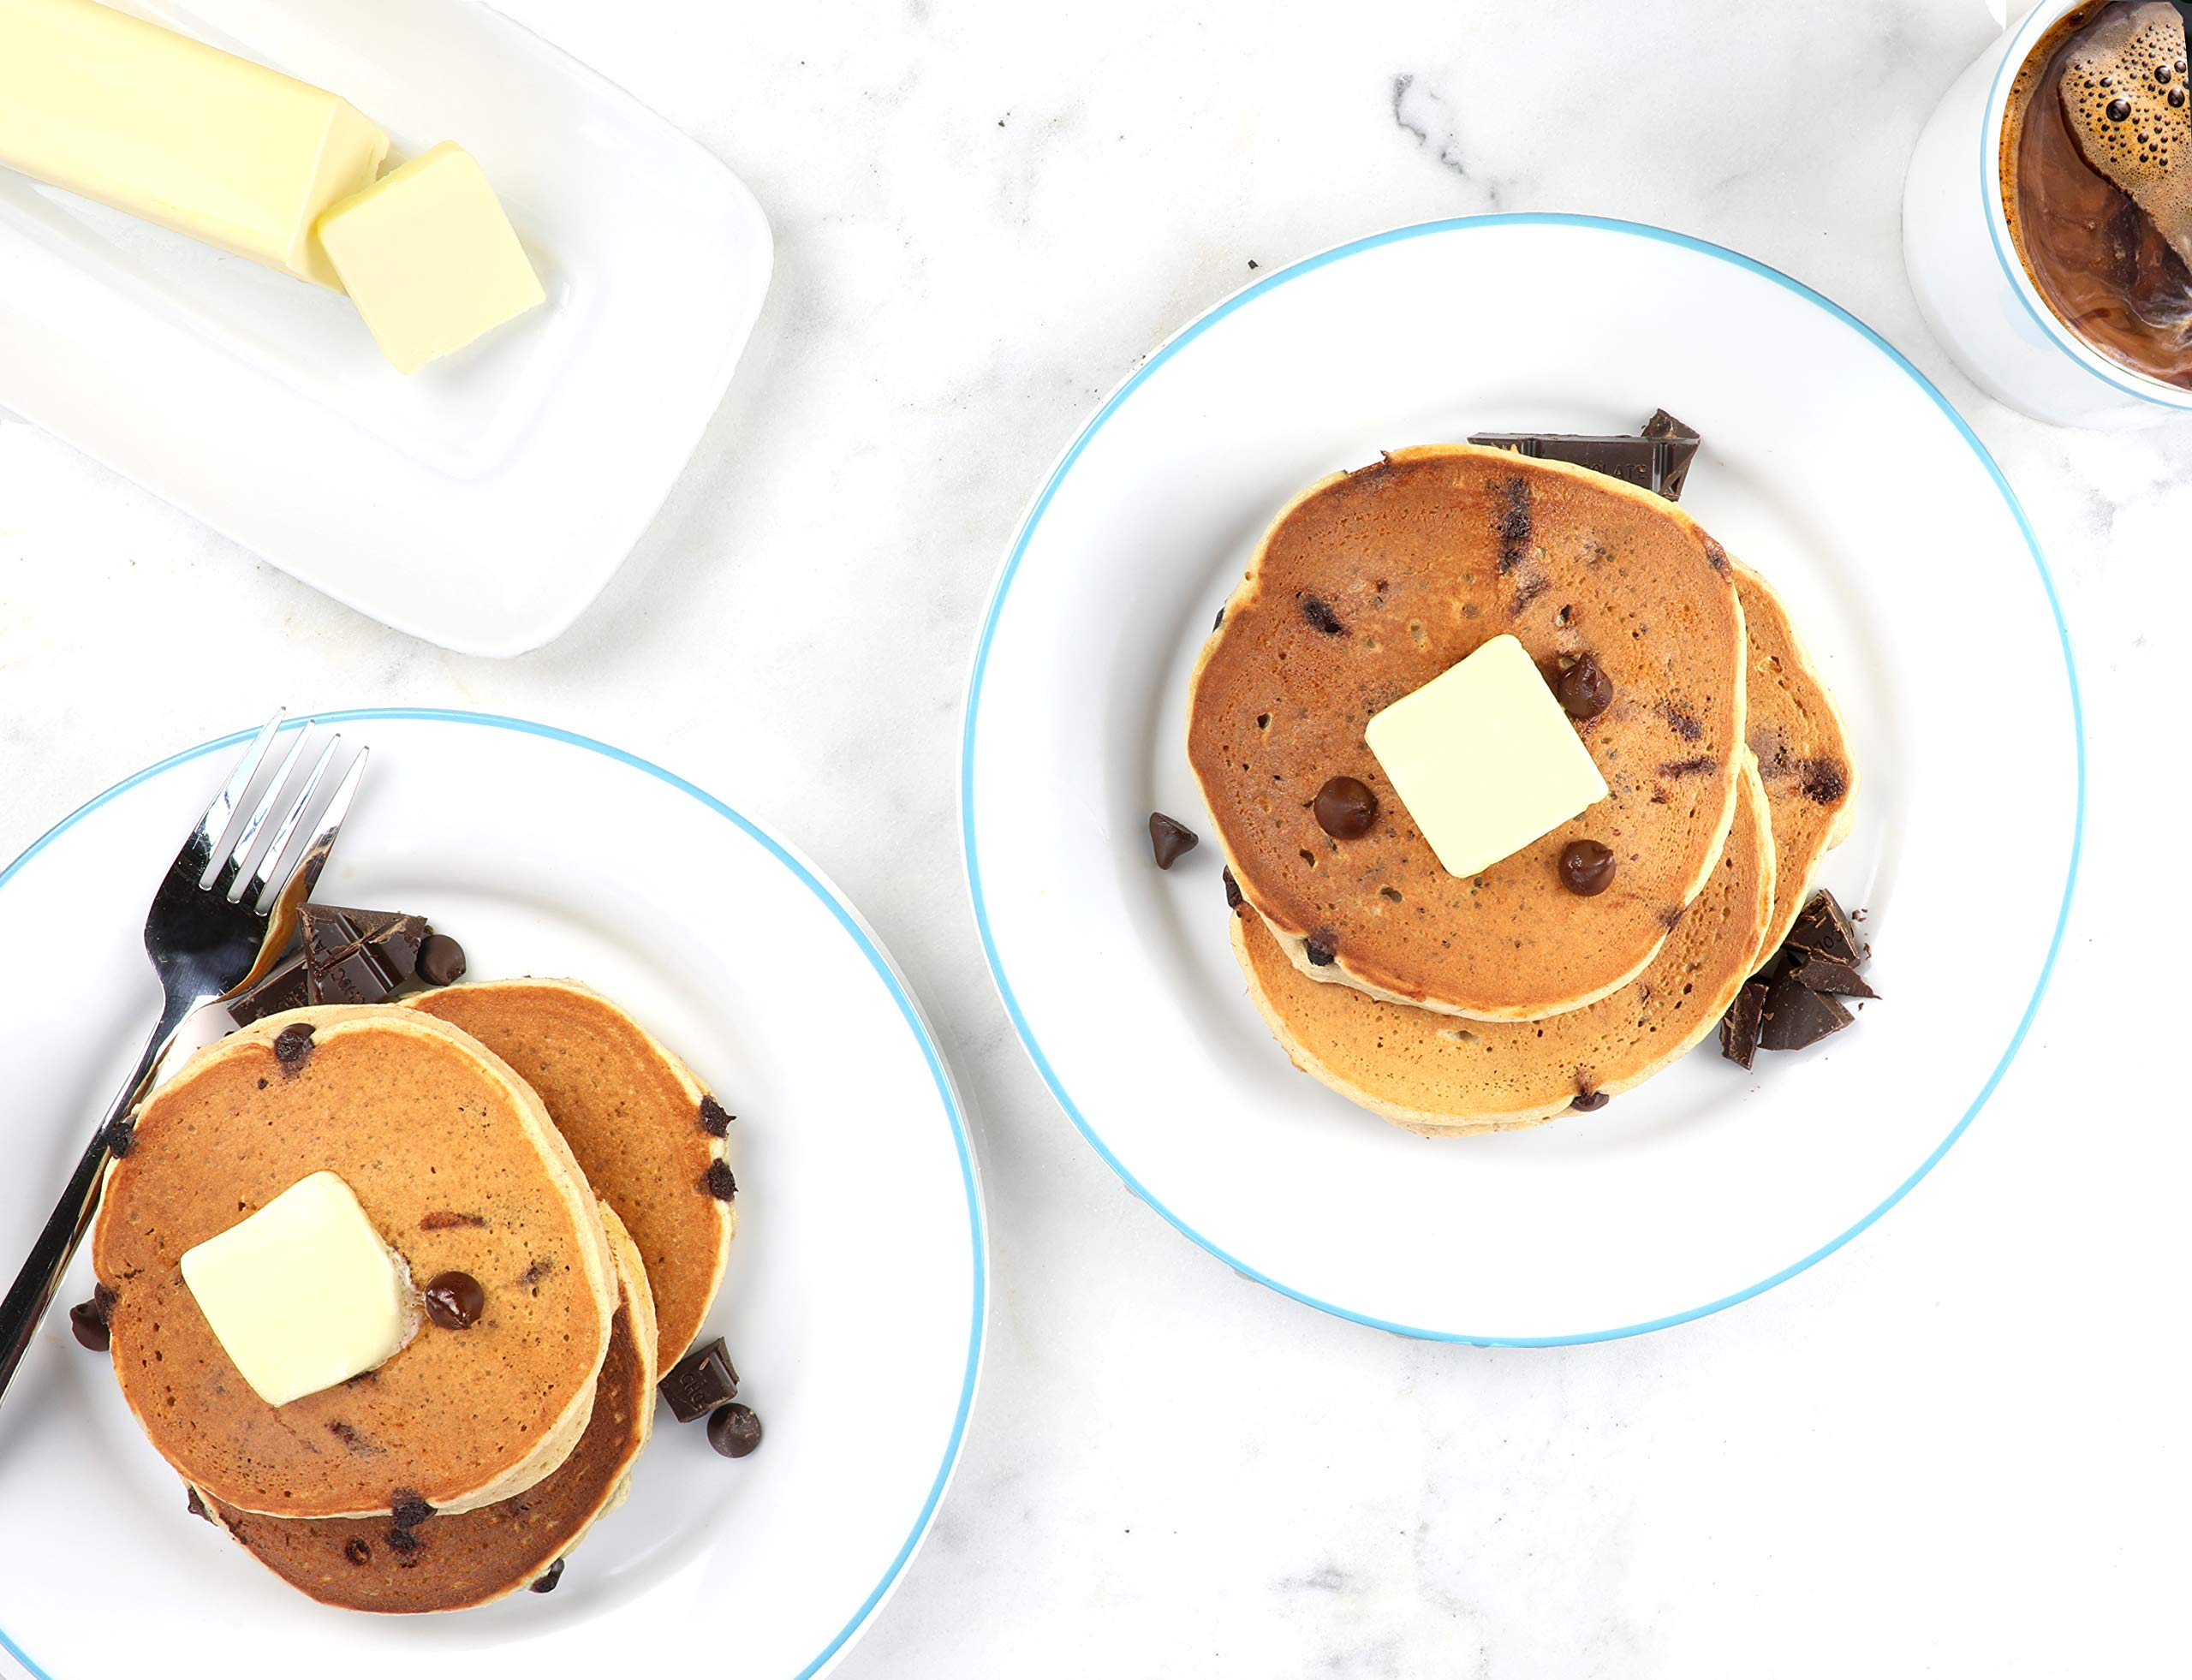 Birch Benders Keto Chocolate Chip Pancake & Waffle Mix with Almond/Coconut & Cassava Flour, 3 Count by Birch Benders (Image #5)